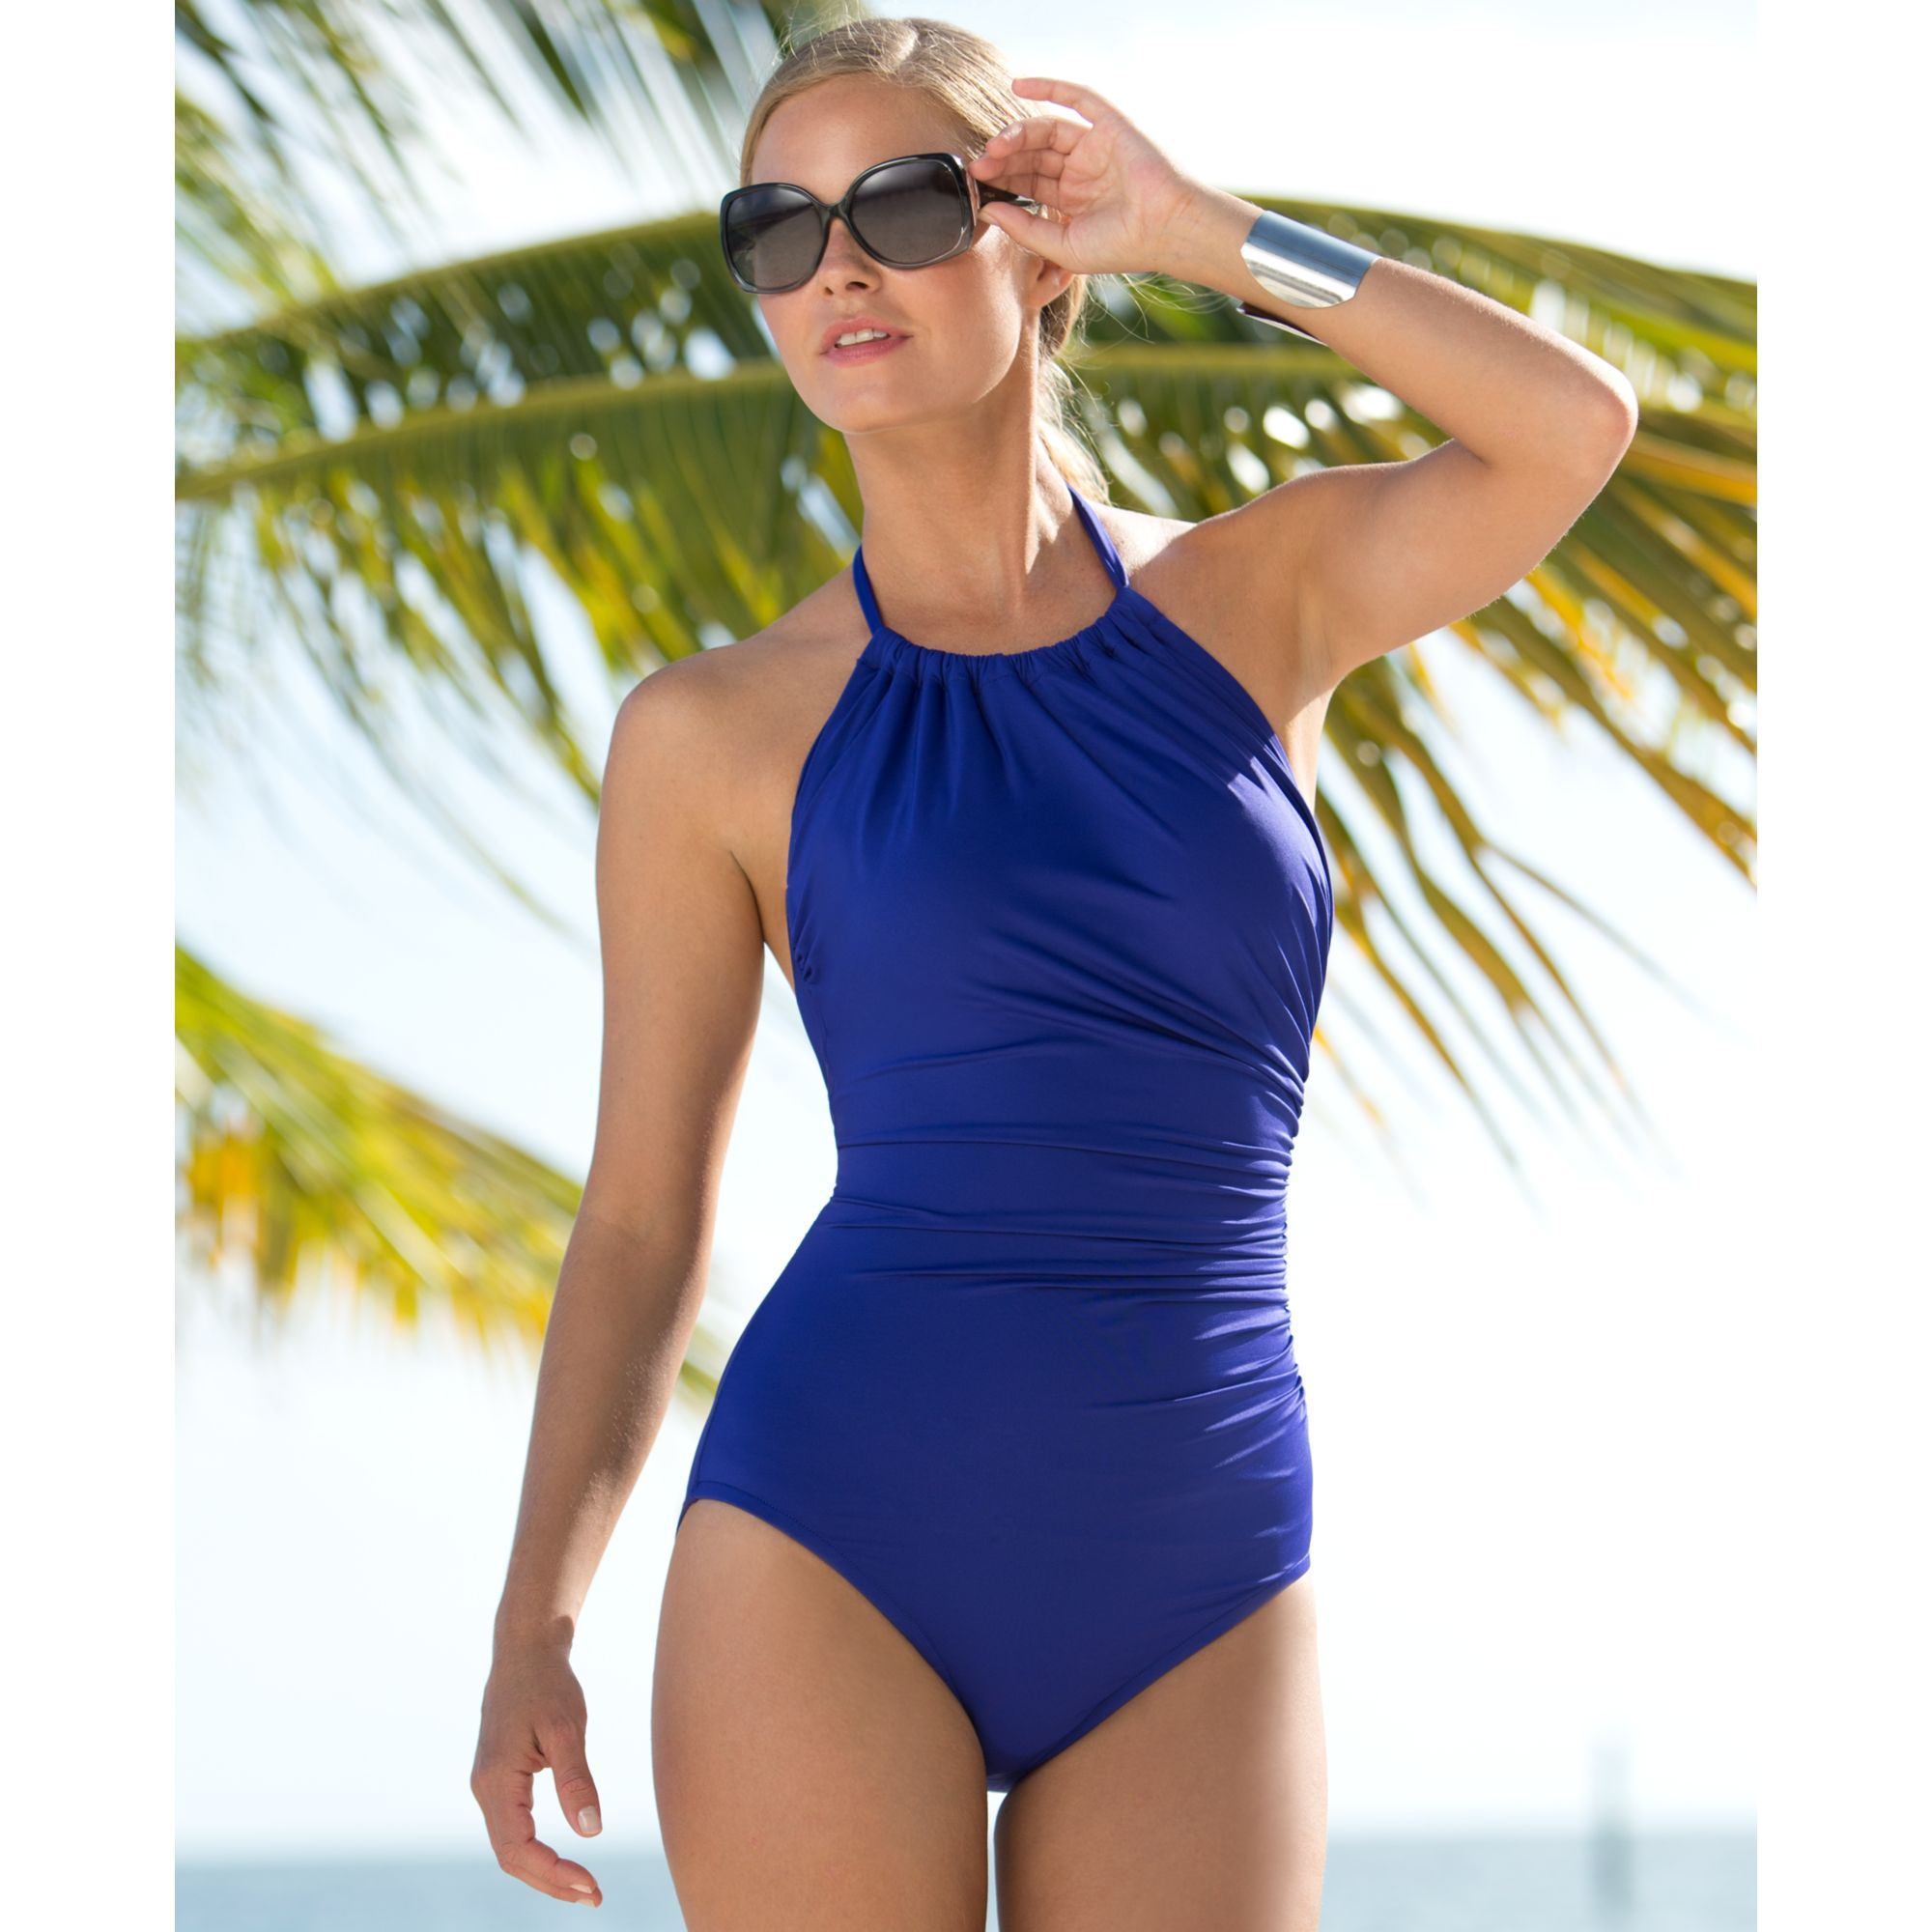 846e03492add5 Badgley Mischka Ruched Highneck Onepiece Swimsuit in Blue - Lyst